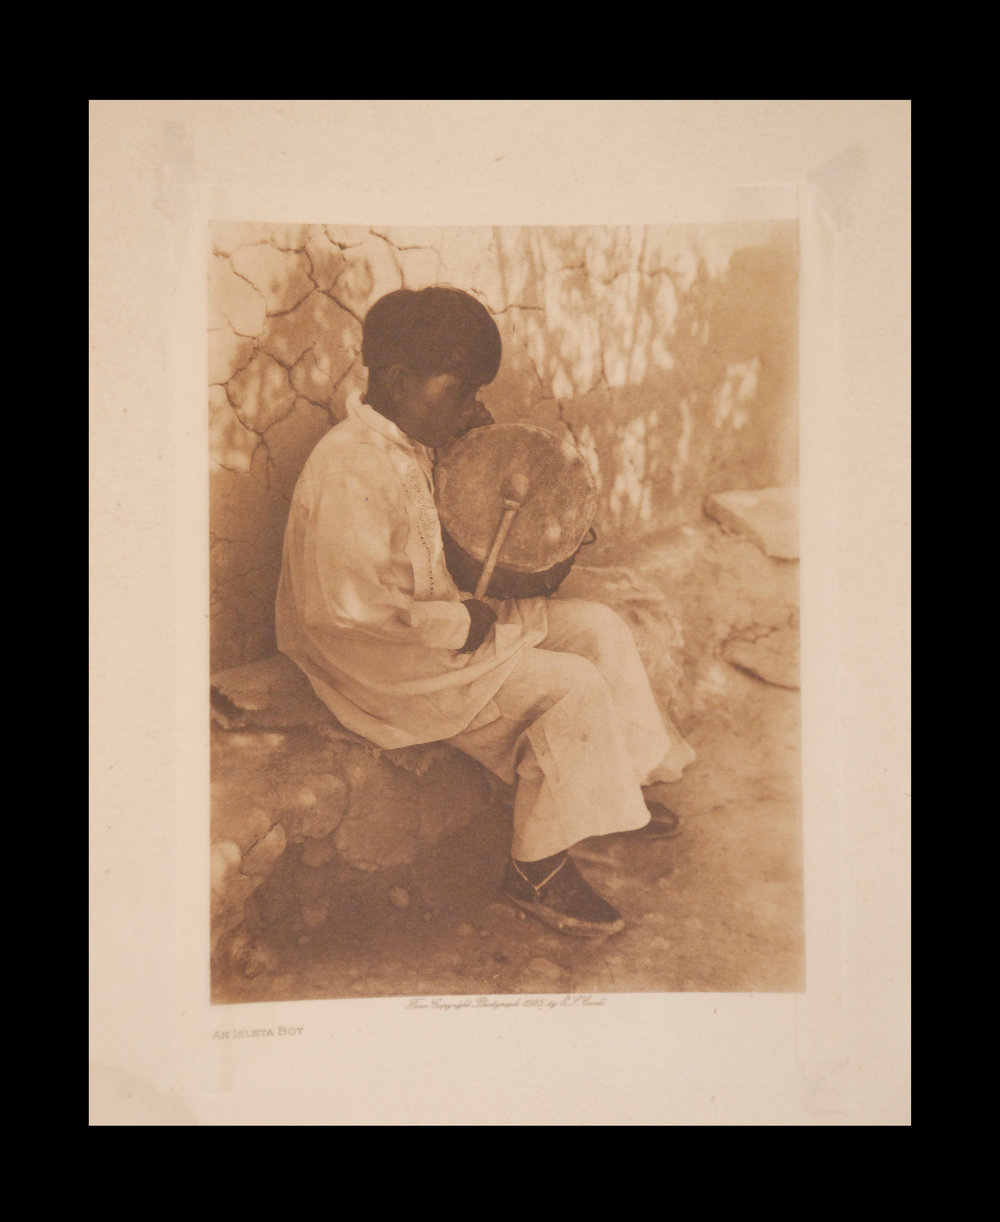 """An Isleta   Boy"" 1925 Vol.16 Tissue Print Vintage Photogravure"